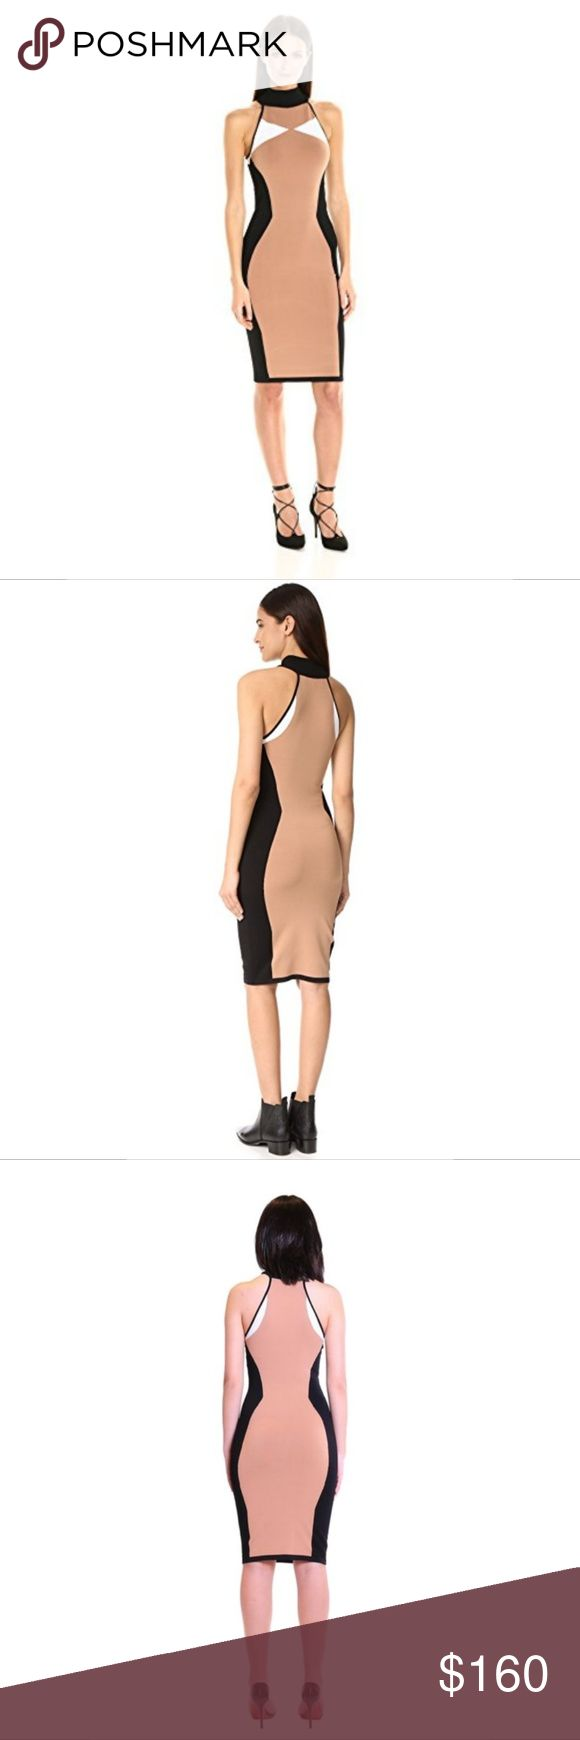 "Kendall and Kylie Jenner Illusion Halter Dress New with tags Kendall and Kylie Jenner/Kardashian Illusion Halter Dress   Bandage dress  Mock turtleneck sweater dress  Halter neckline  Pullover styling  Color block Illusion dress; slimming design  Neutral colors: beige, white, black  style for work/office wear or for a night out  Very stretchy and forgiving material  Note that the dress has some snags only on INTERIOR of dress but are not visible from EXTERIOR of dress  Bust: 31.5""  Waist…"